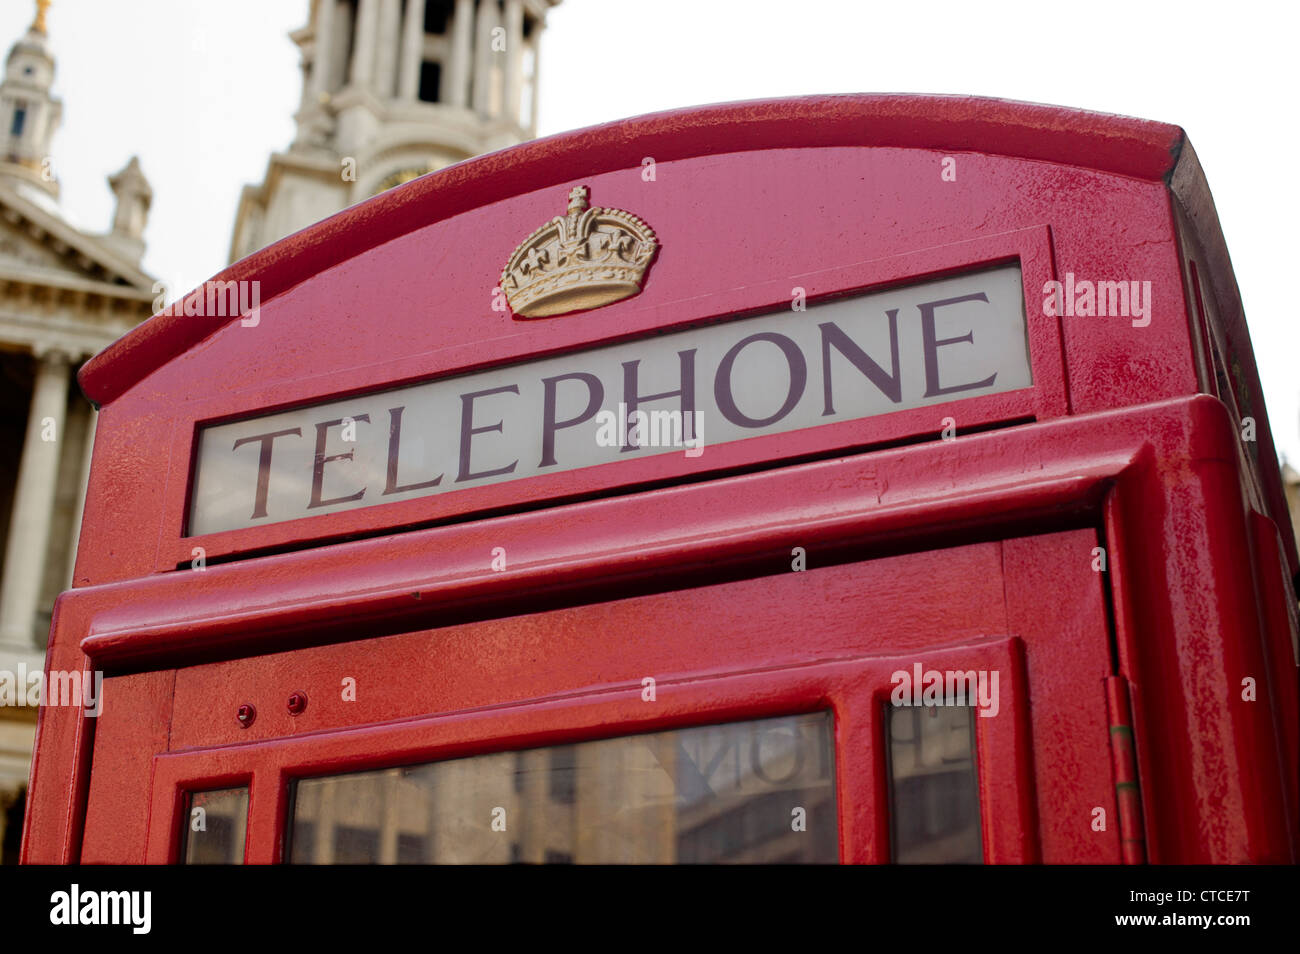 Old style red telephone box outside St. Paul's Cathedral - Stock Image